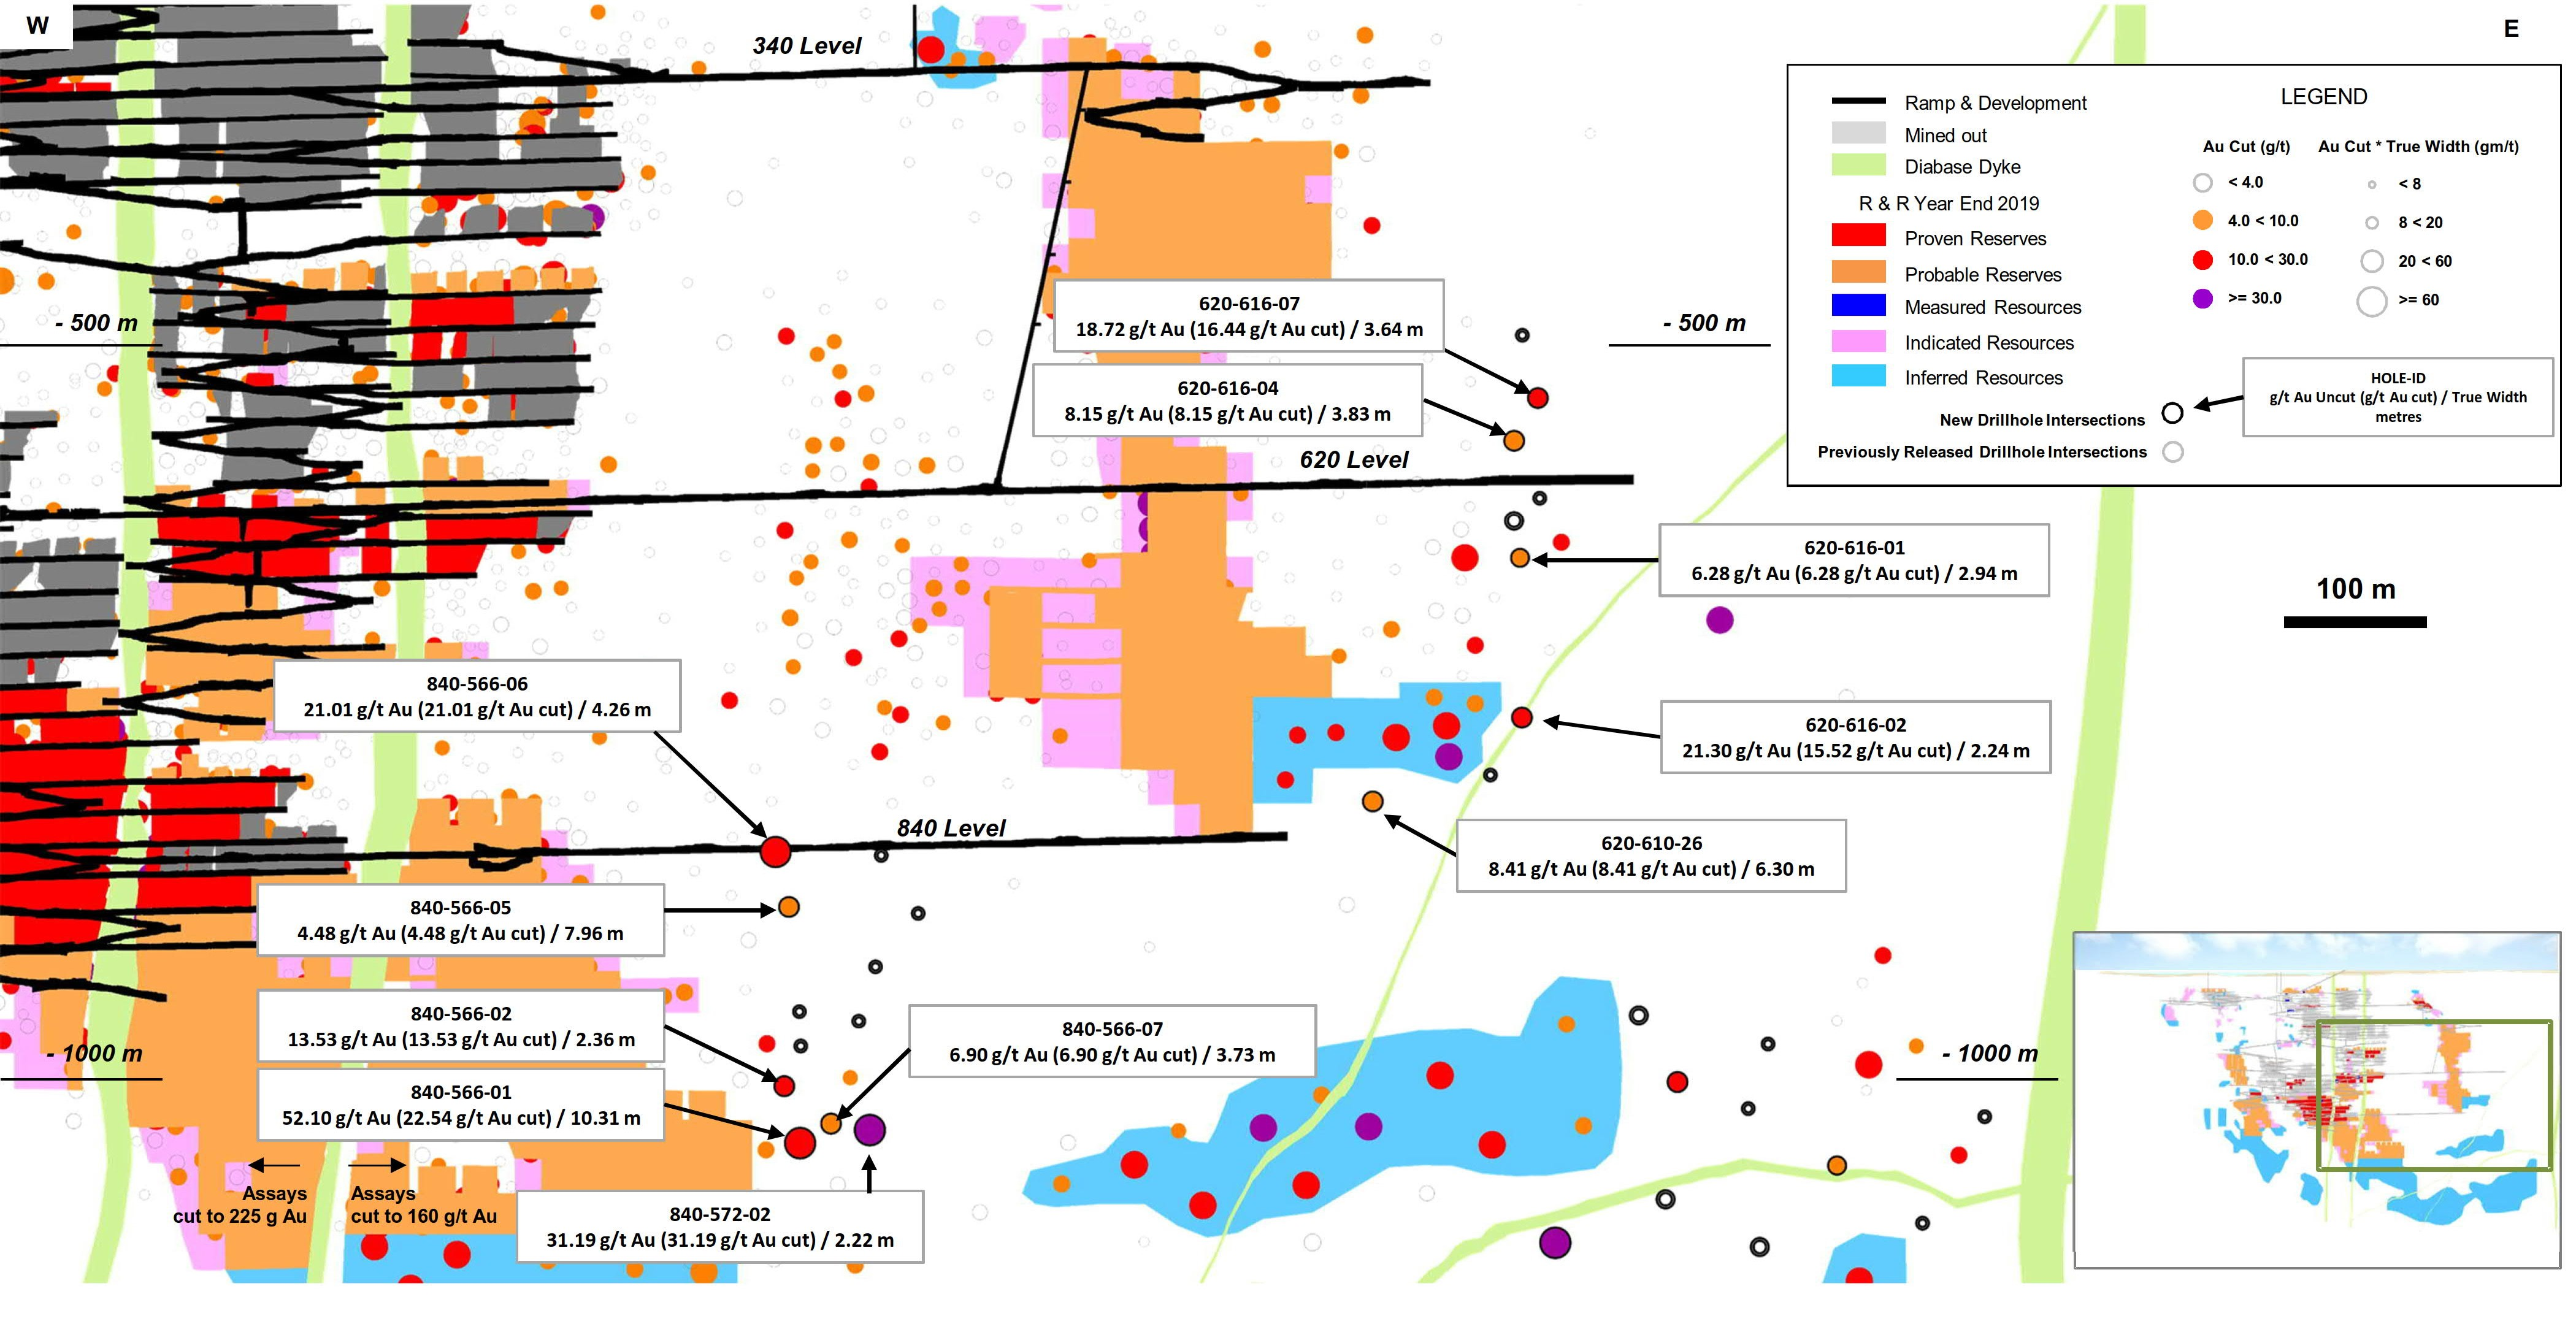 Figure 3: Island Gold Mine Longitudinal Main and East Areas - Underground Exploration Drilling Results